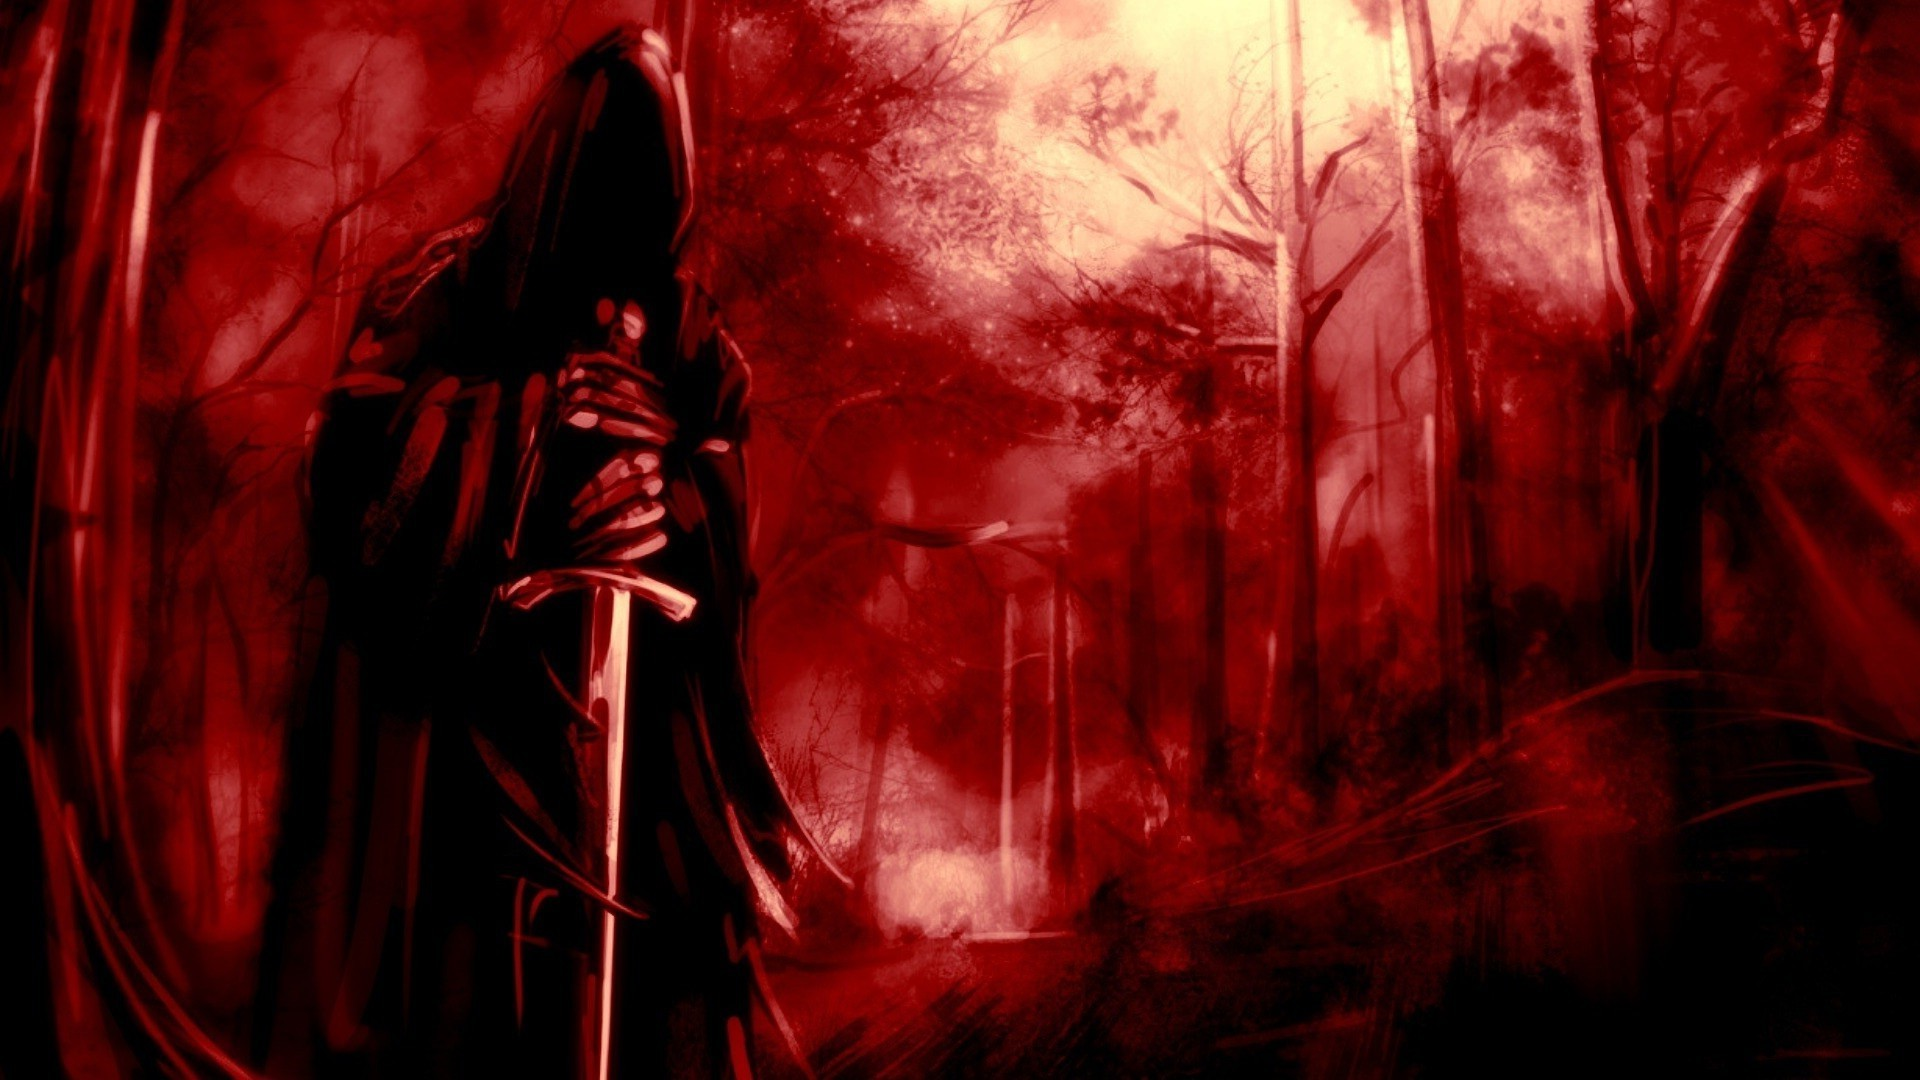 Scary 3d Wallpaper The Lord Of The Rings Nazg 251 L Wallpapers Hd Desktop And